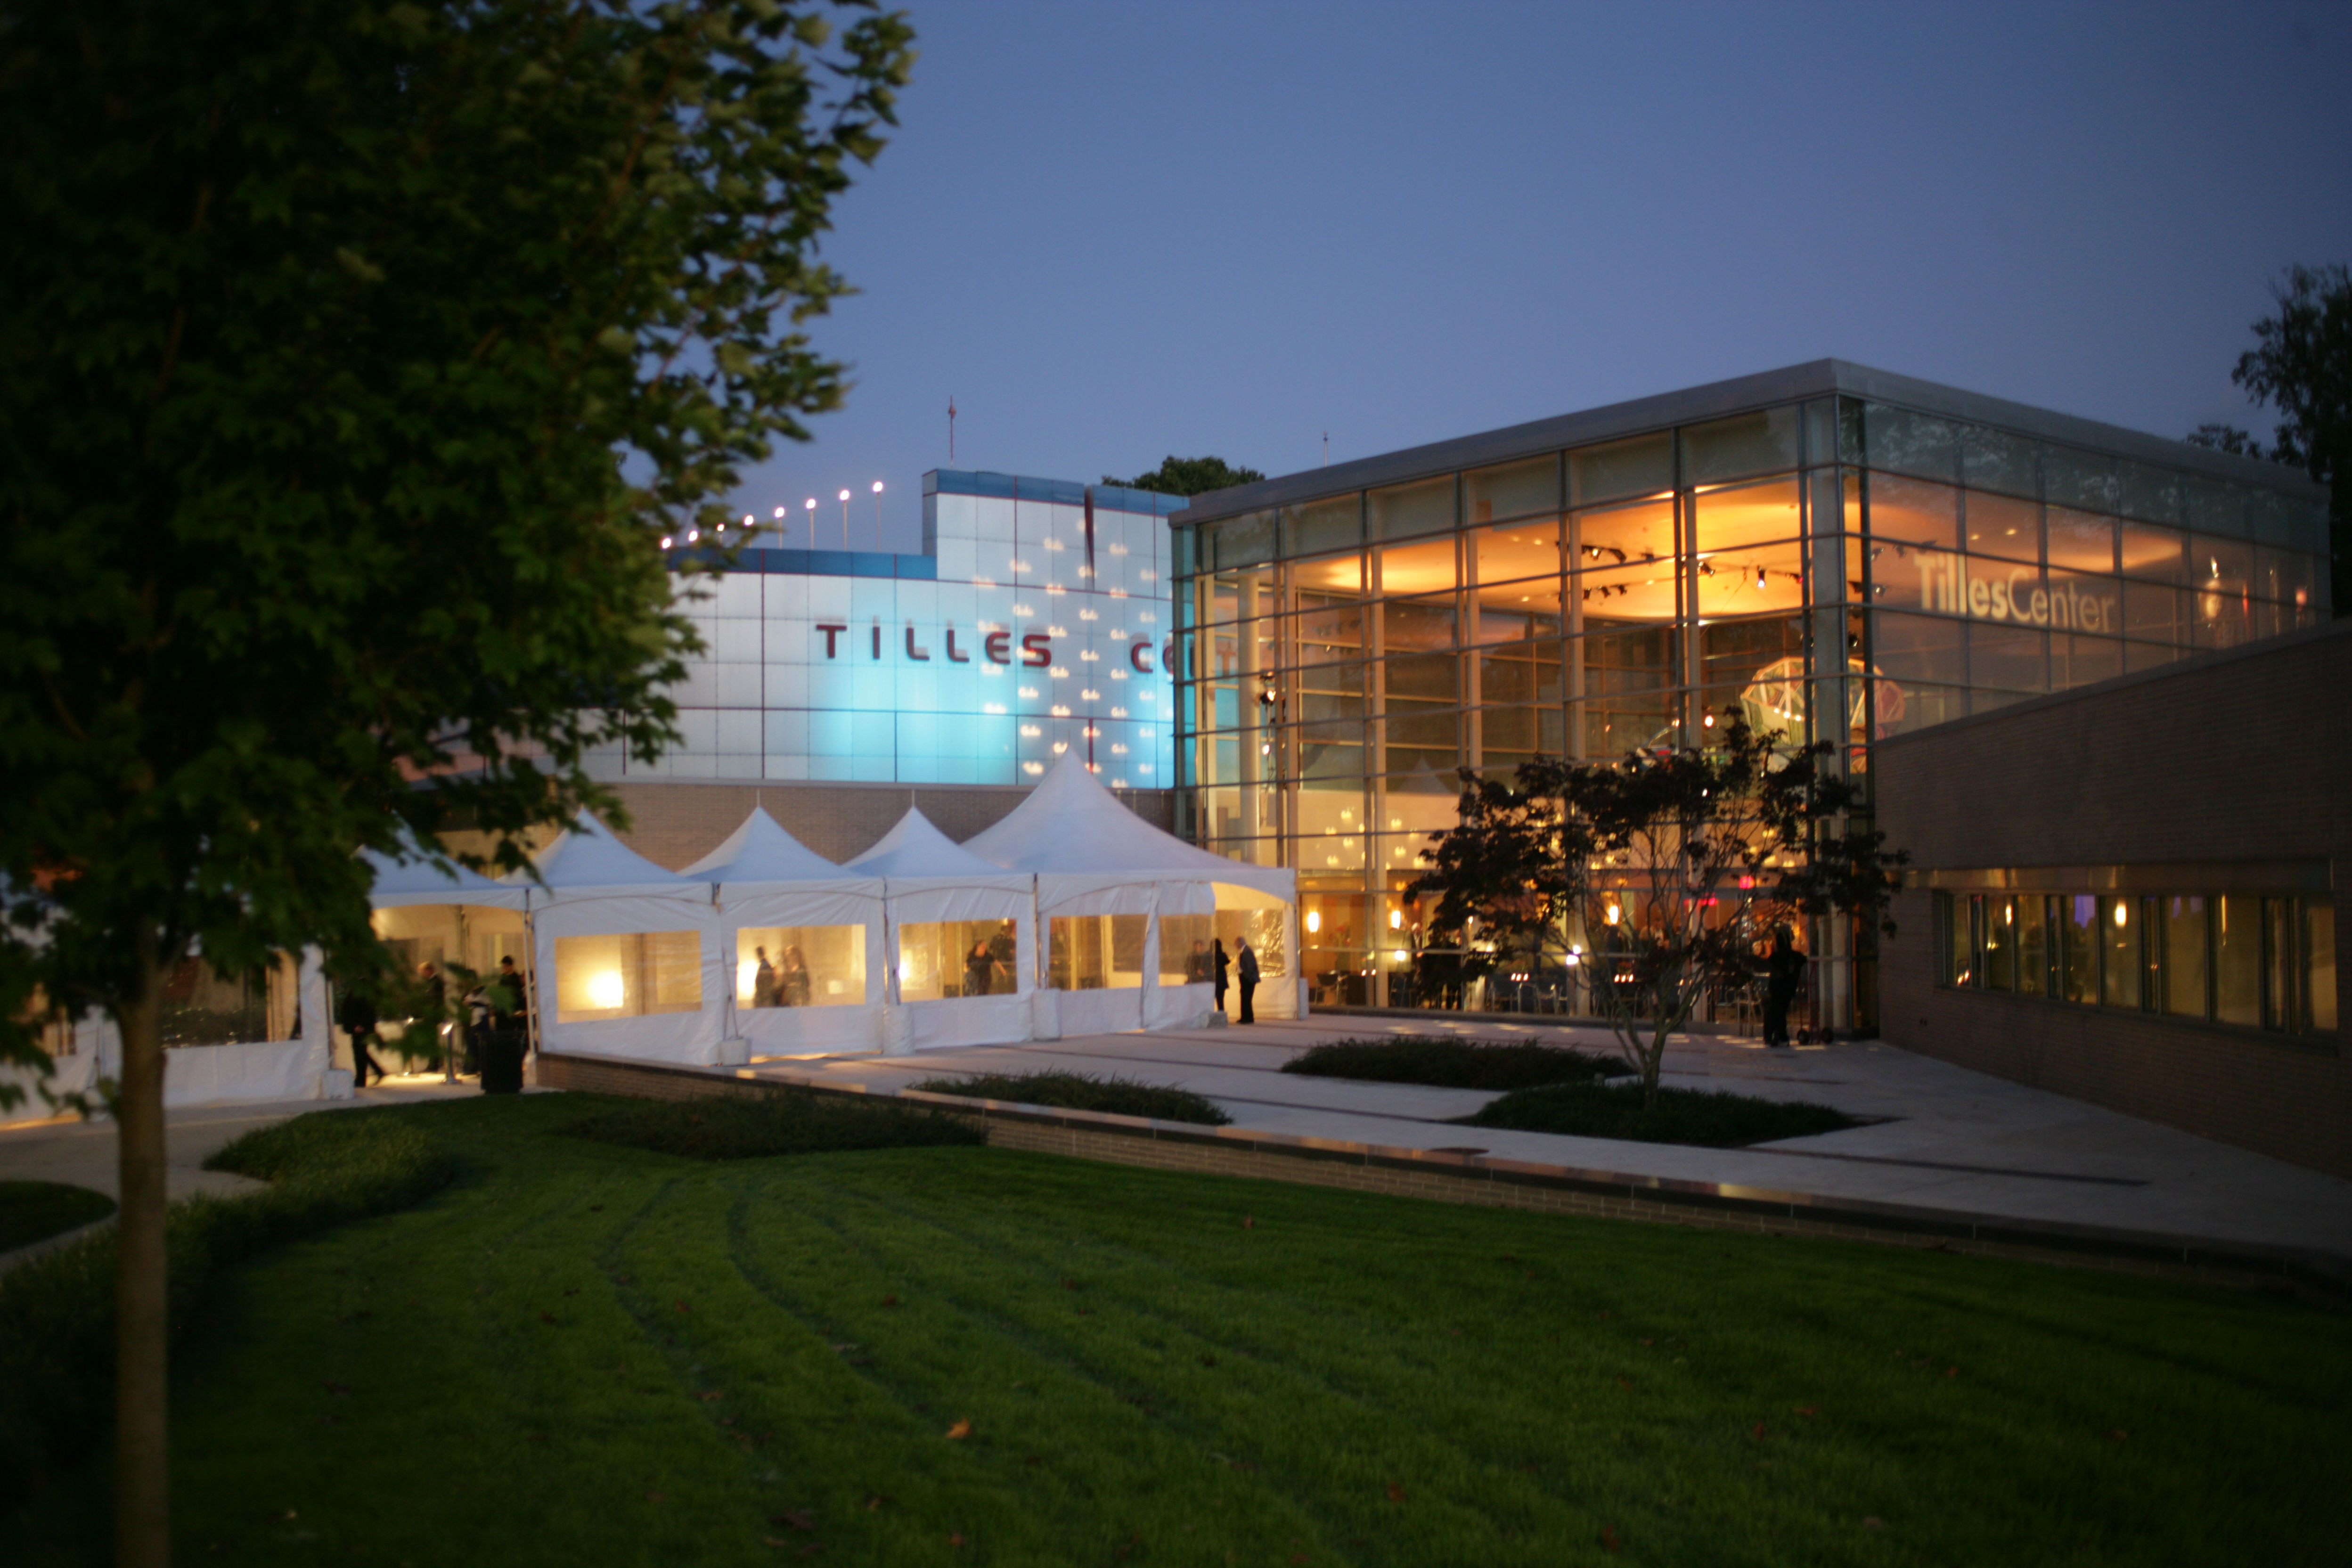 Tilles Center at Dusk